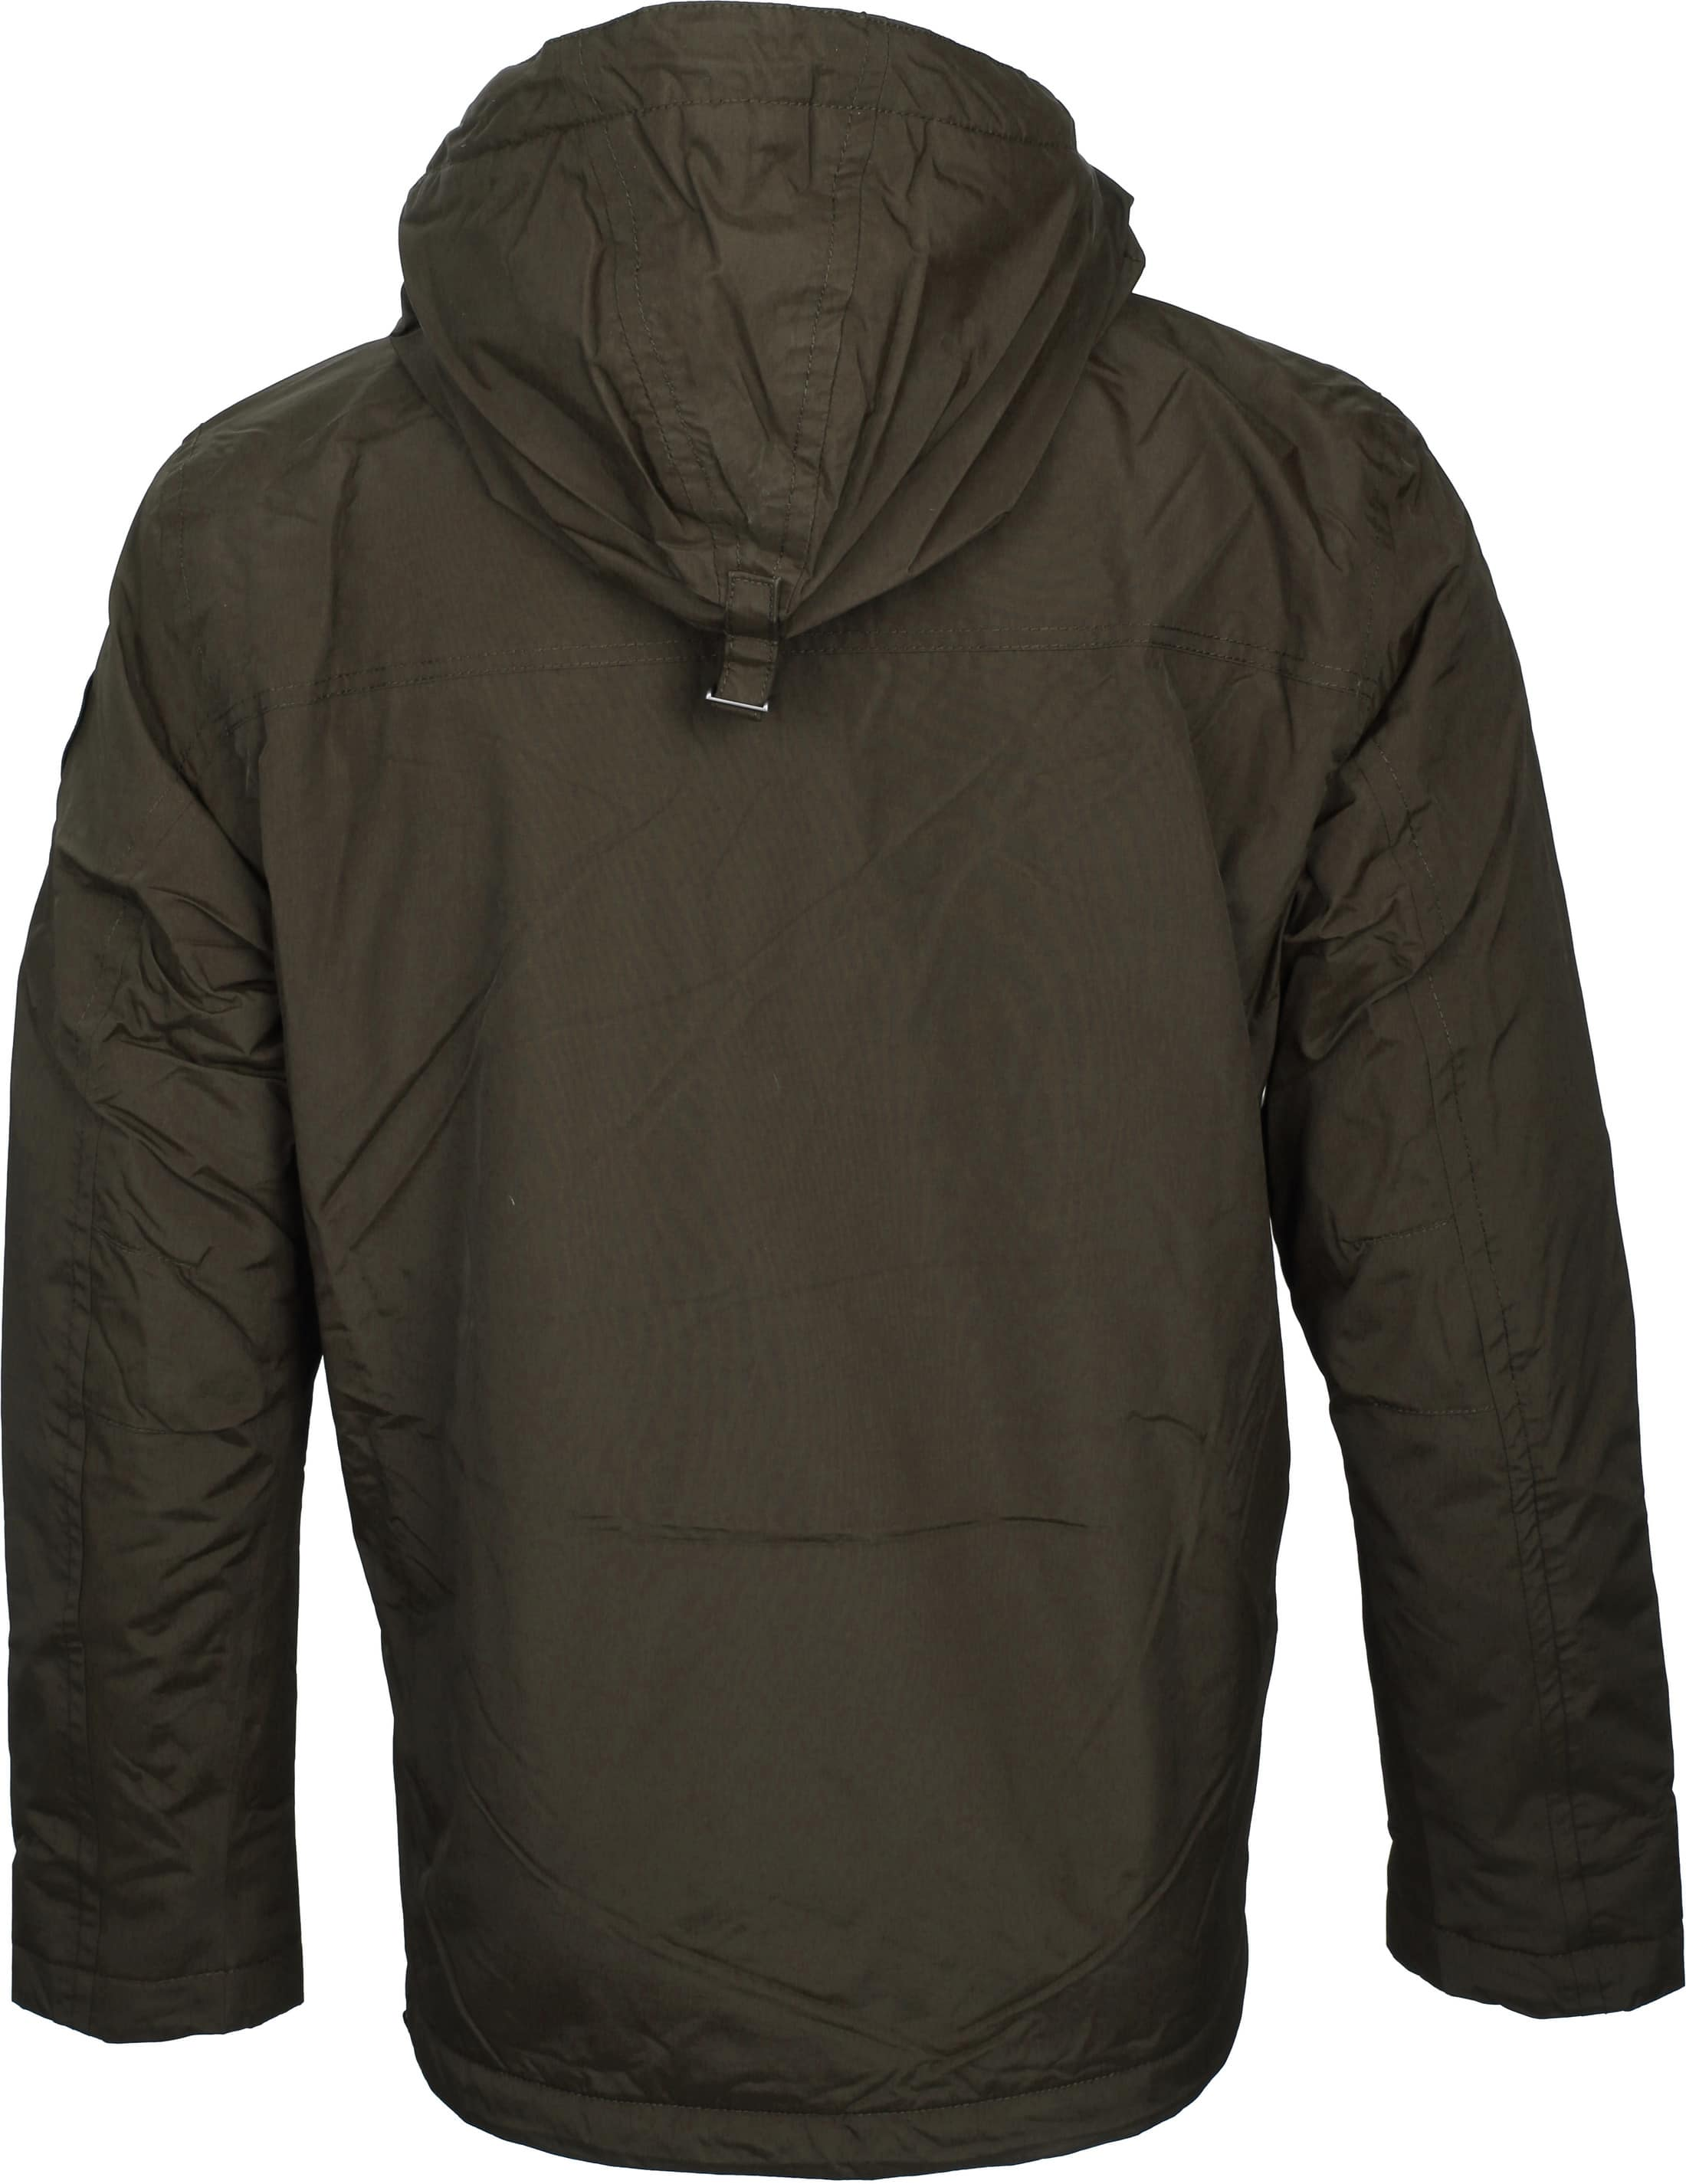 Napapijri Anorak Rainforest Pocket Darkgreen foto 5